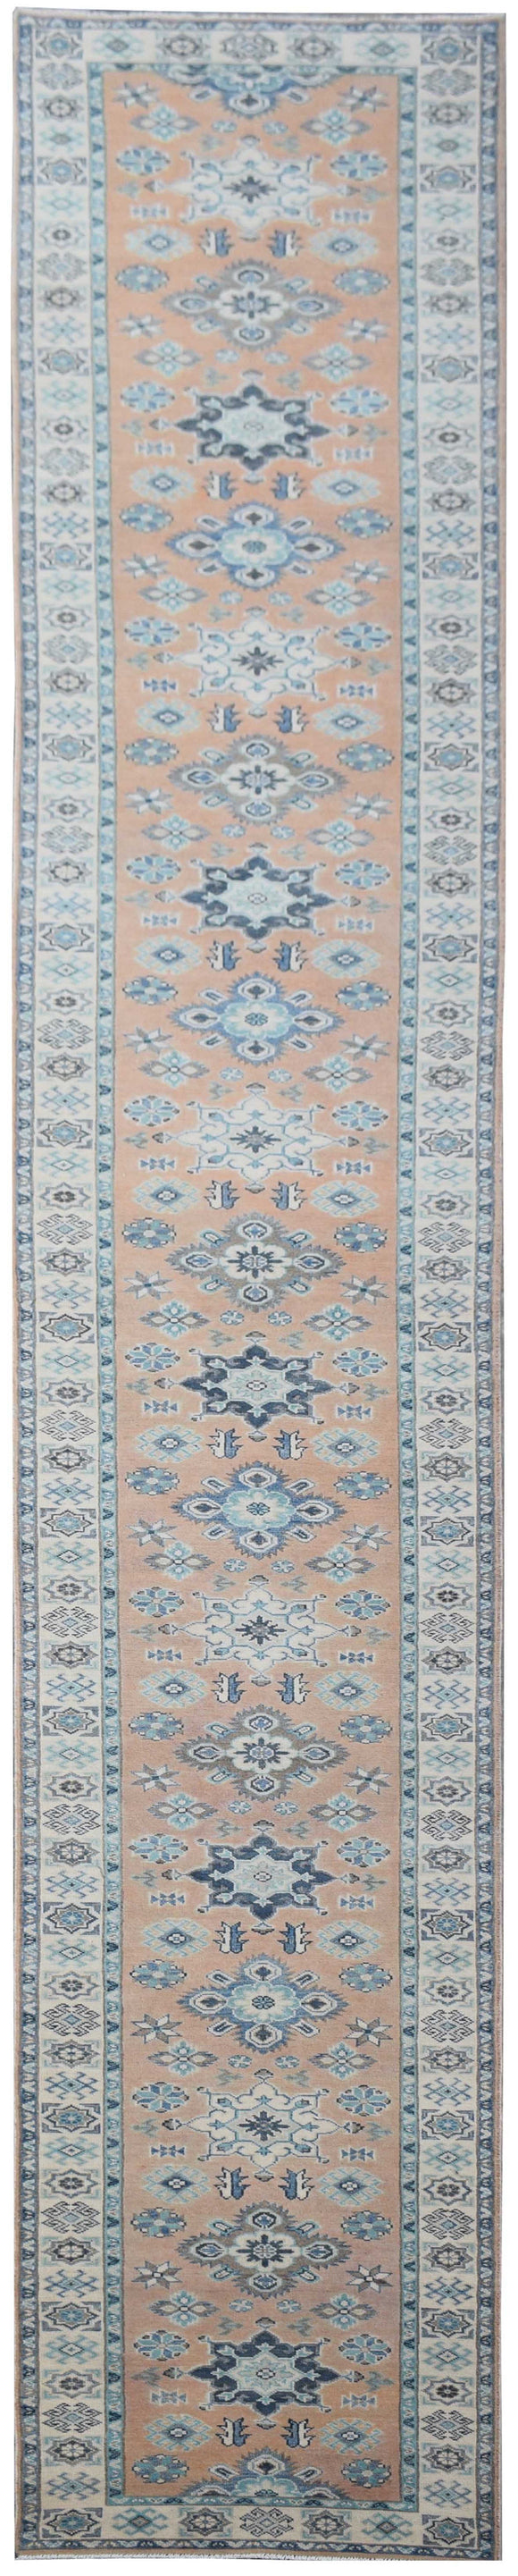 Handmade Sultan Collection Hallway Runner | 728 x 80 cm - Najaf Rugs & Textile